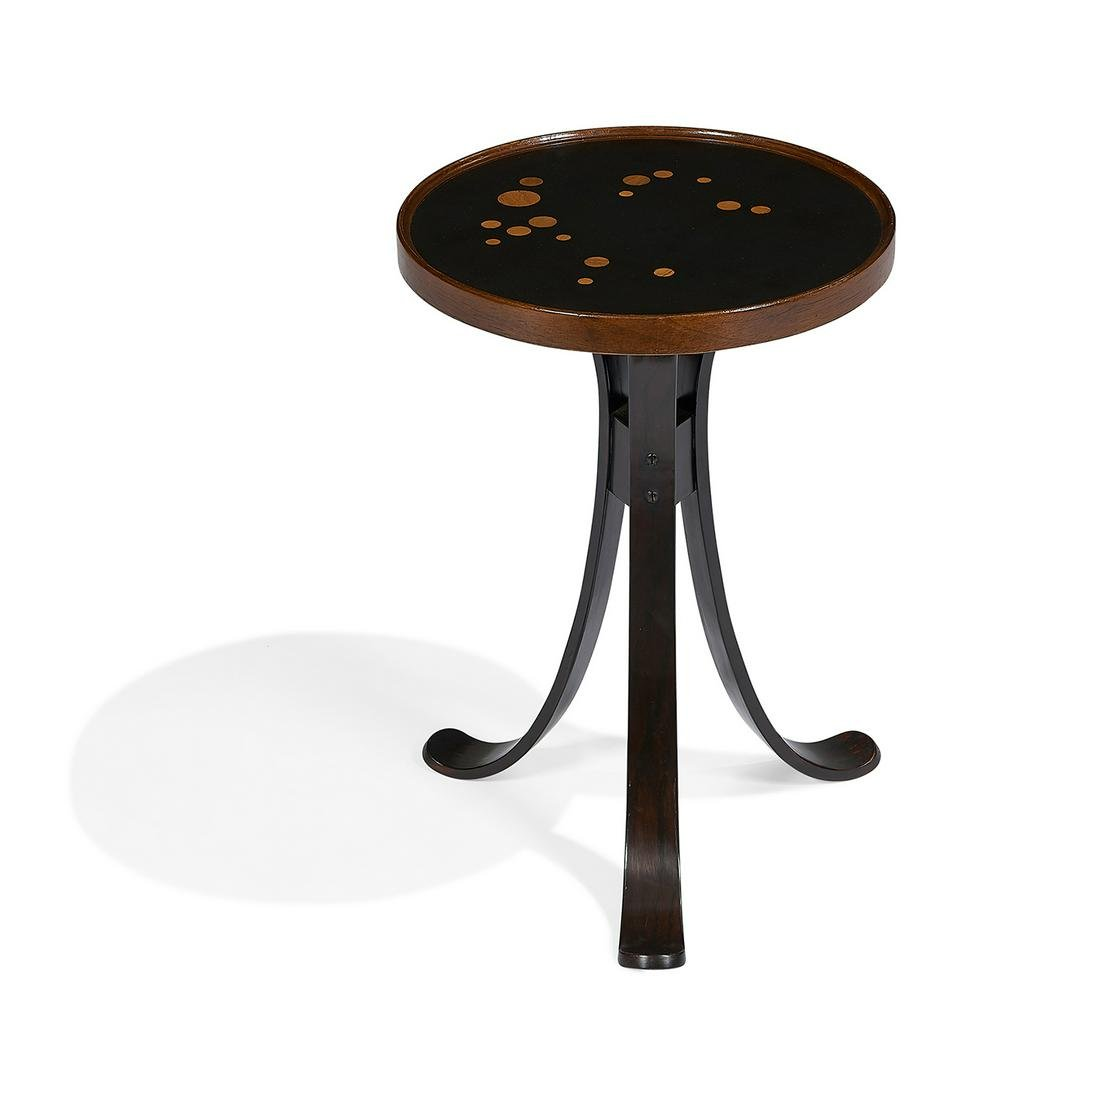 Edward Wormley Constellation table, #479